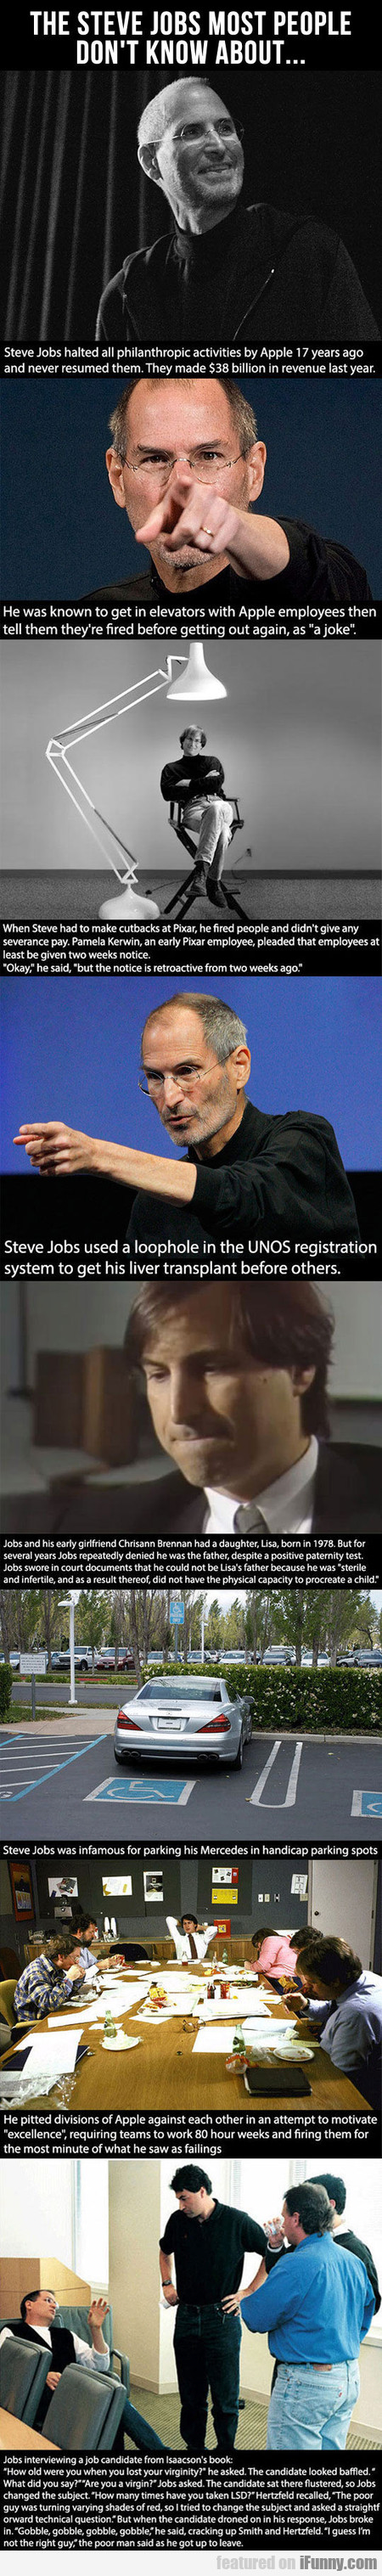 The Steve Jobs Most People Don't Know About